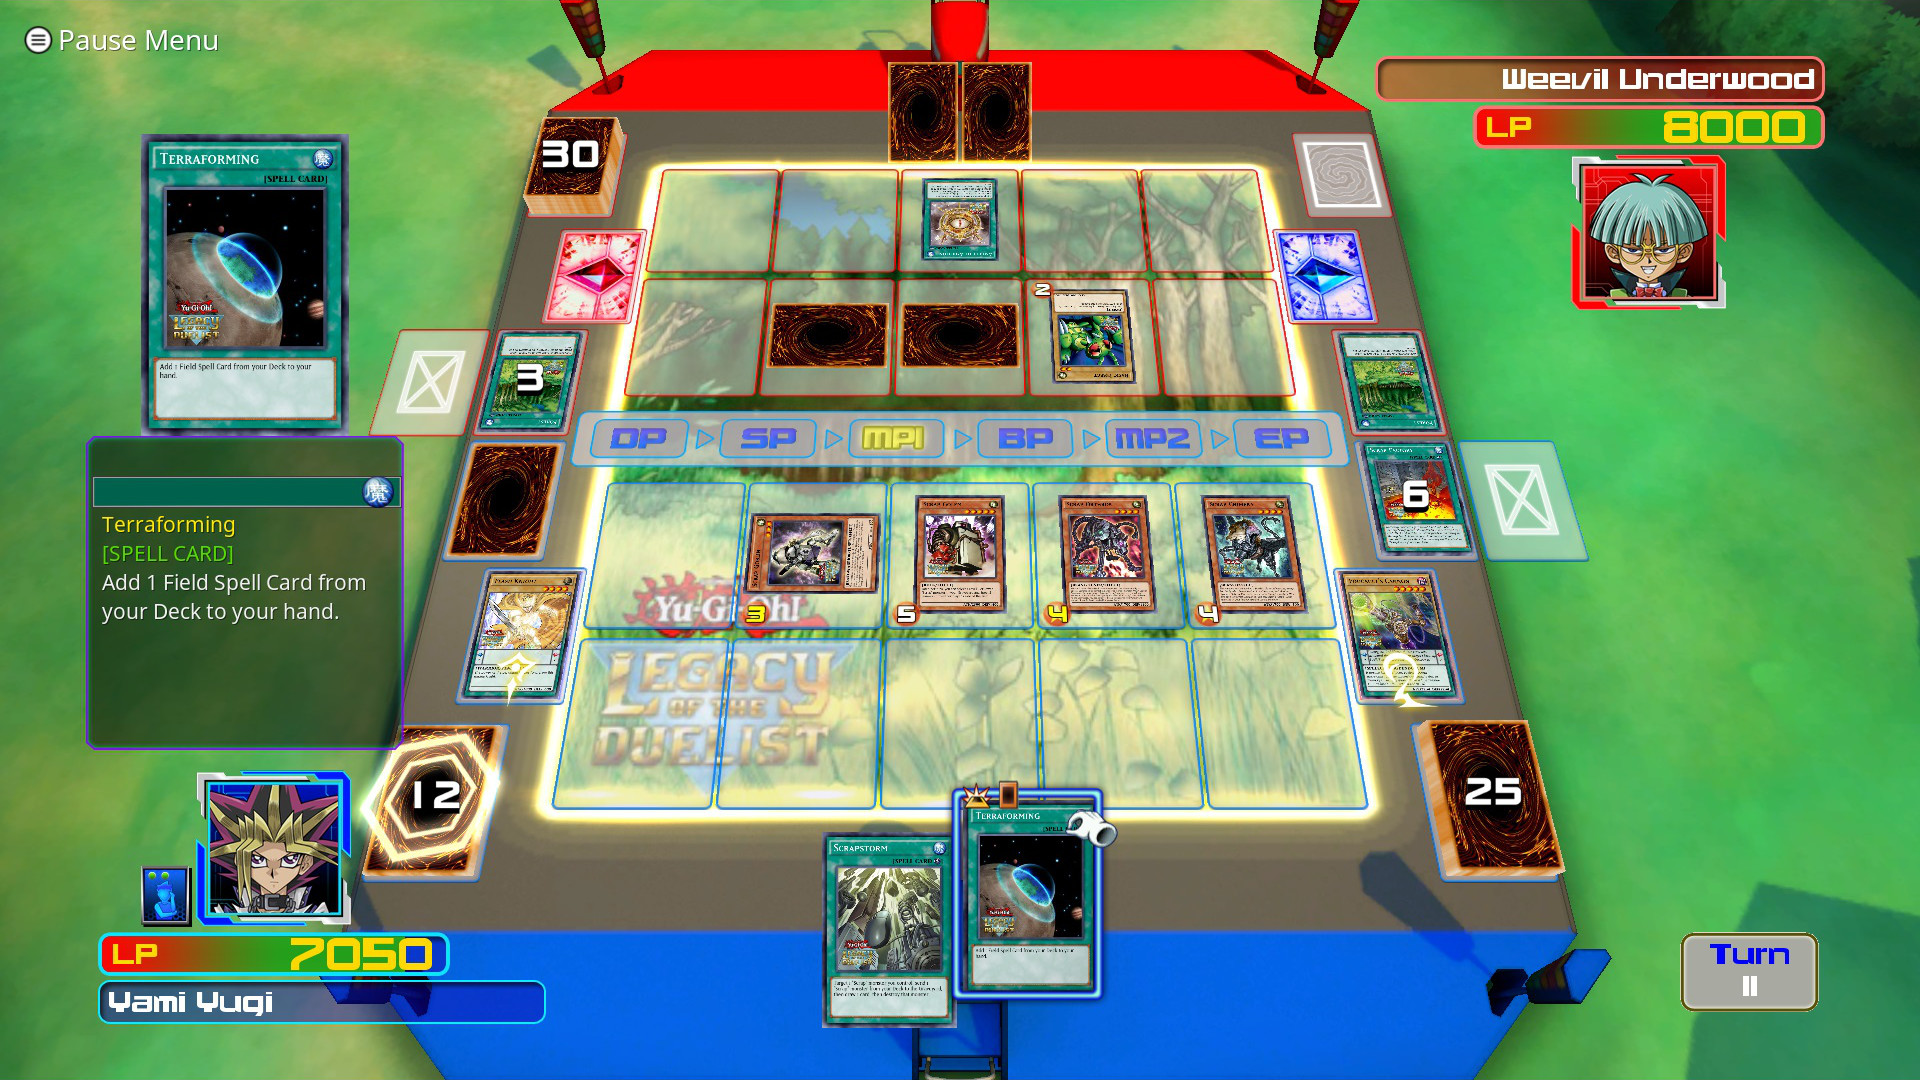 Yugioh! Power of chaos kaiba the revange pc game download youtube.